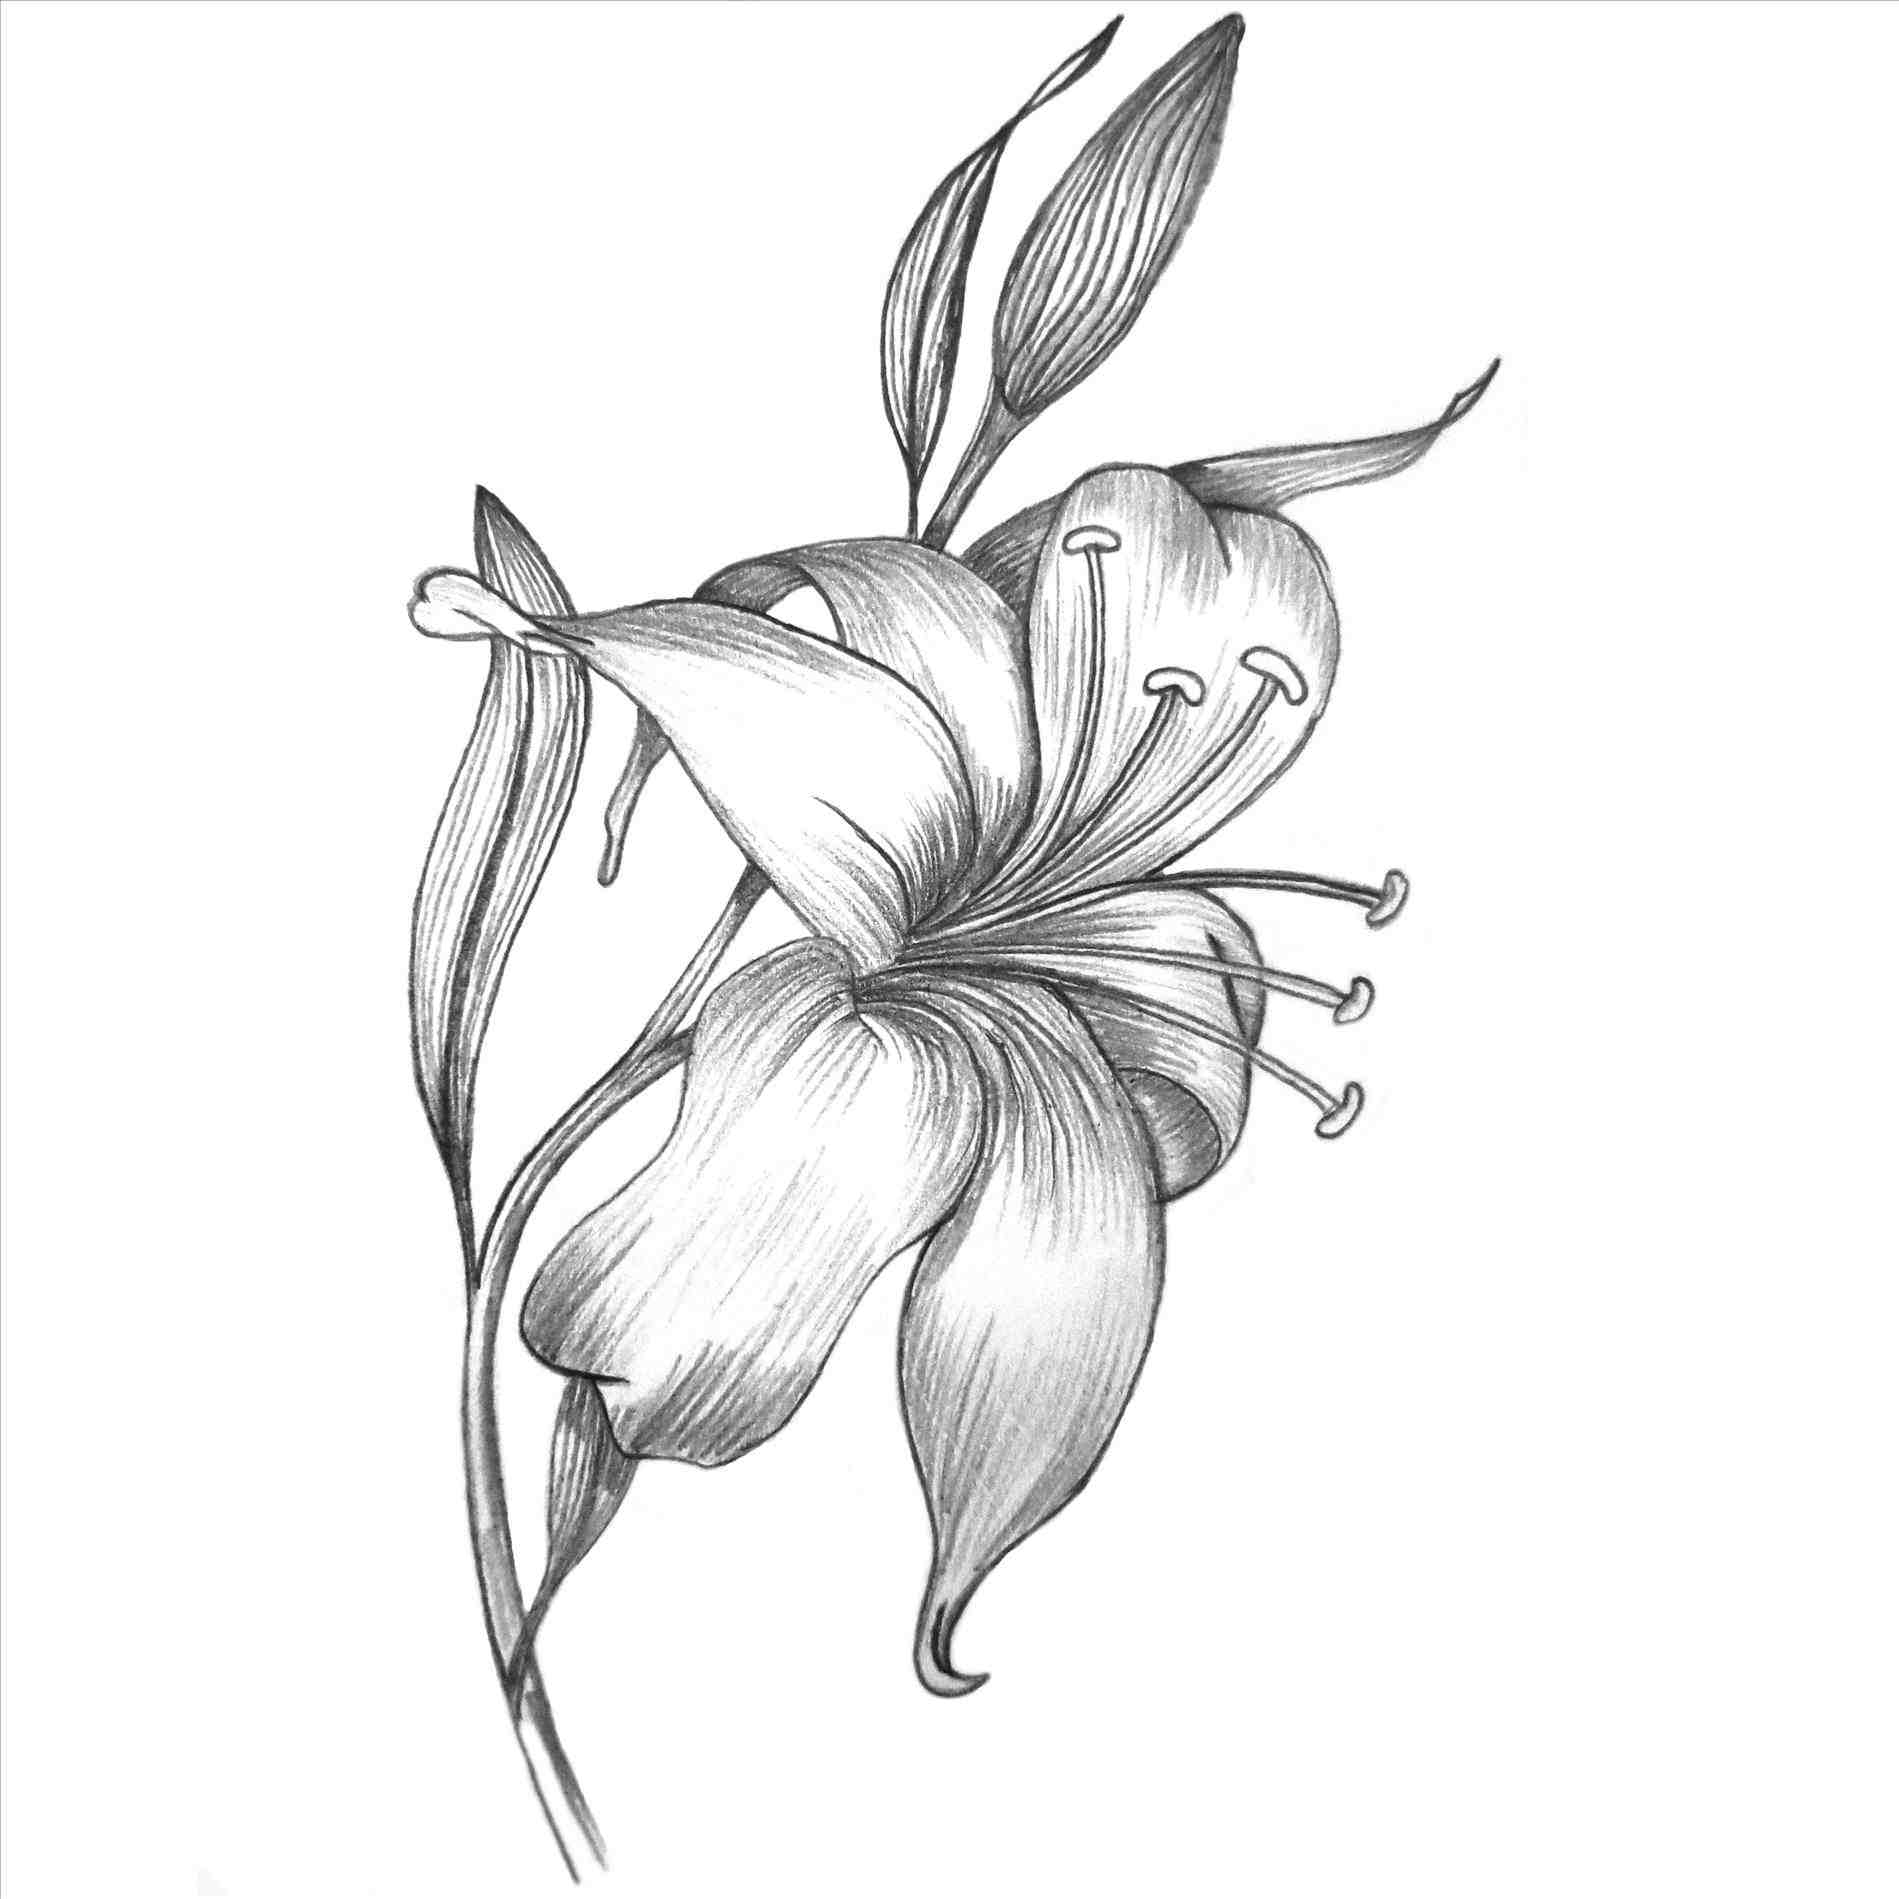 Lily Tattoo Drawing at GetDrawings.com | Free for personal use Lily ...